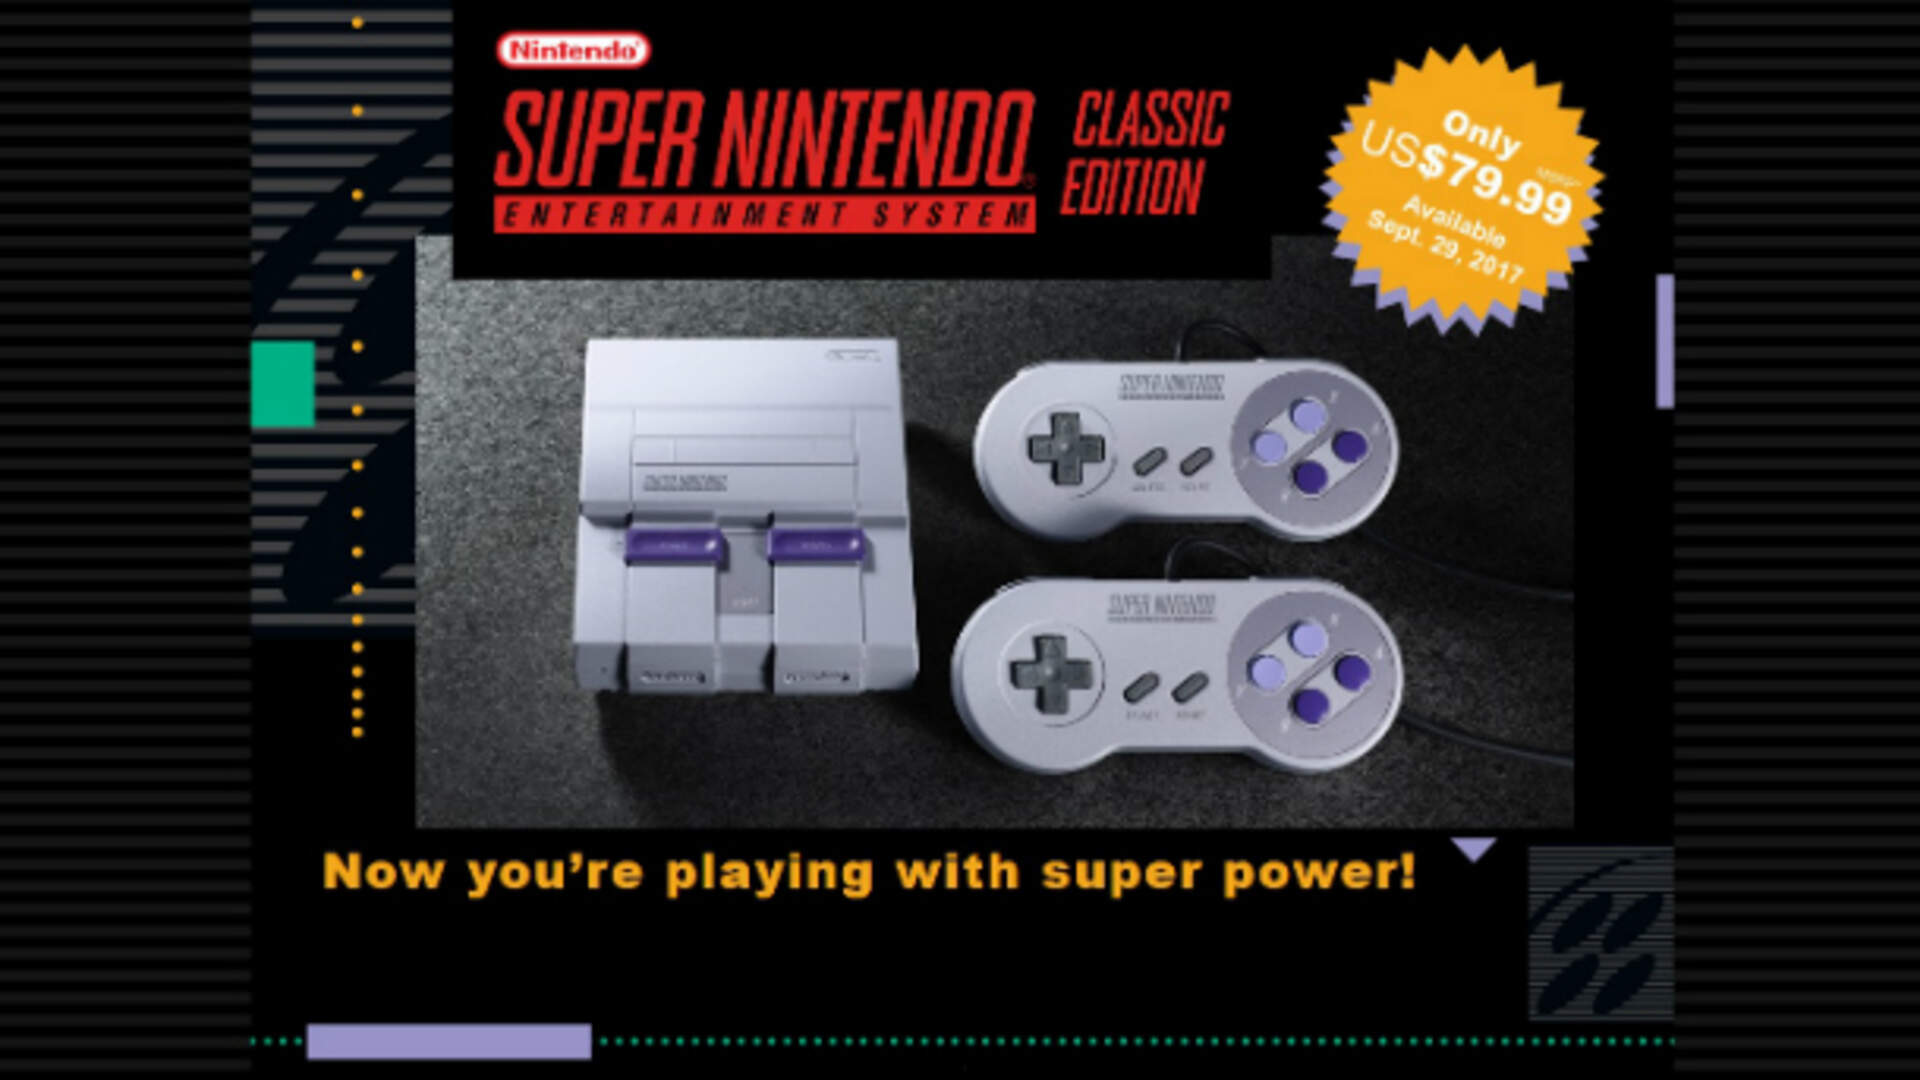 Nintendo Announces SNES Classic Edition, Including The Never-Released Star Fox 2 [Updated: Nintendo Promises More Shipments]